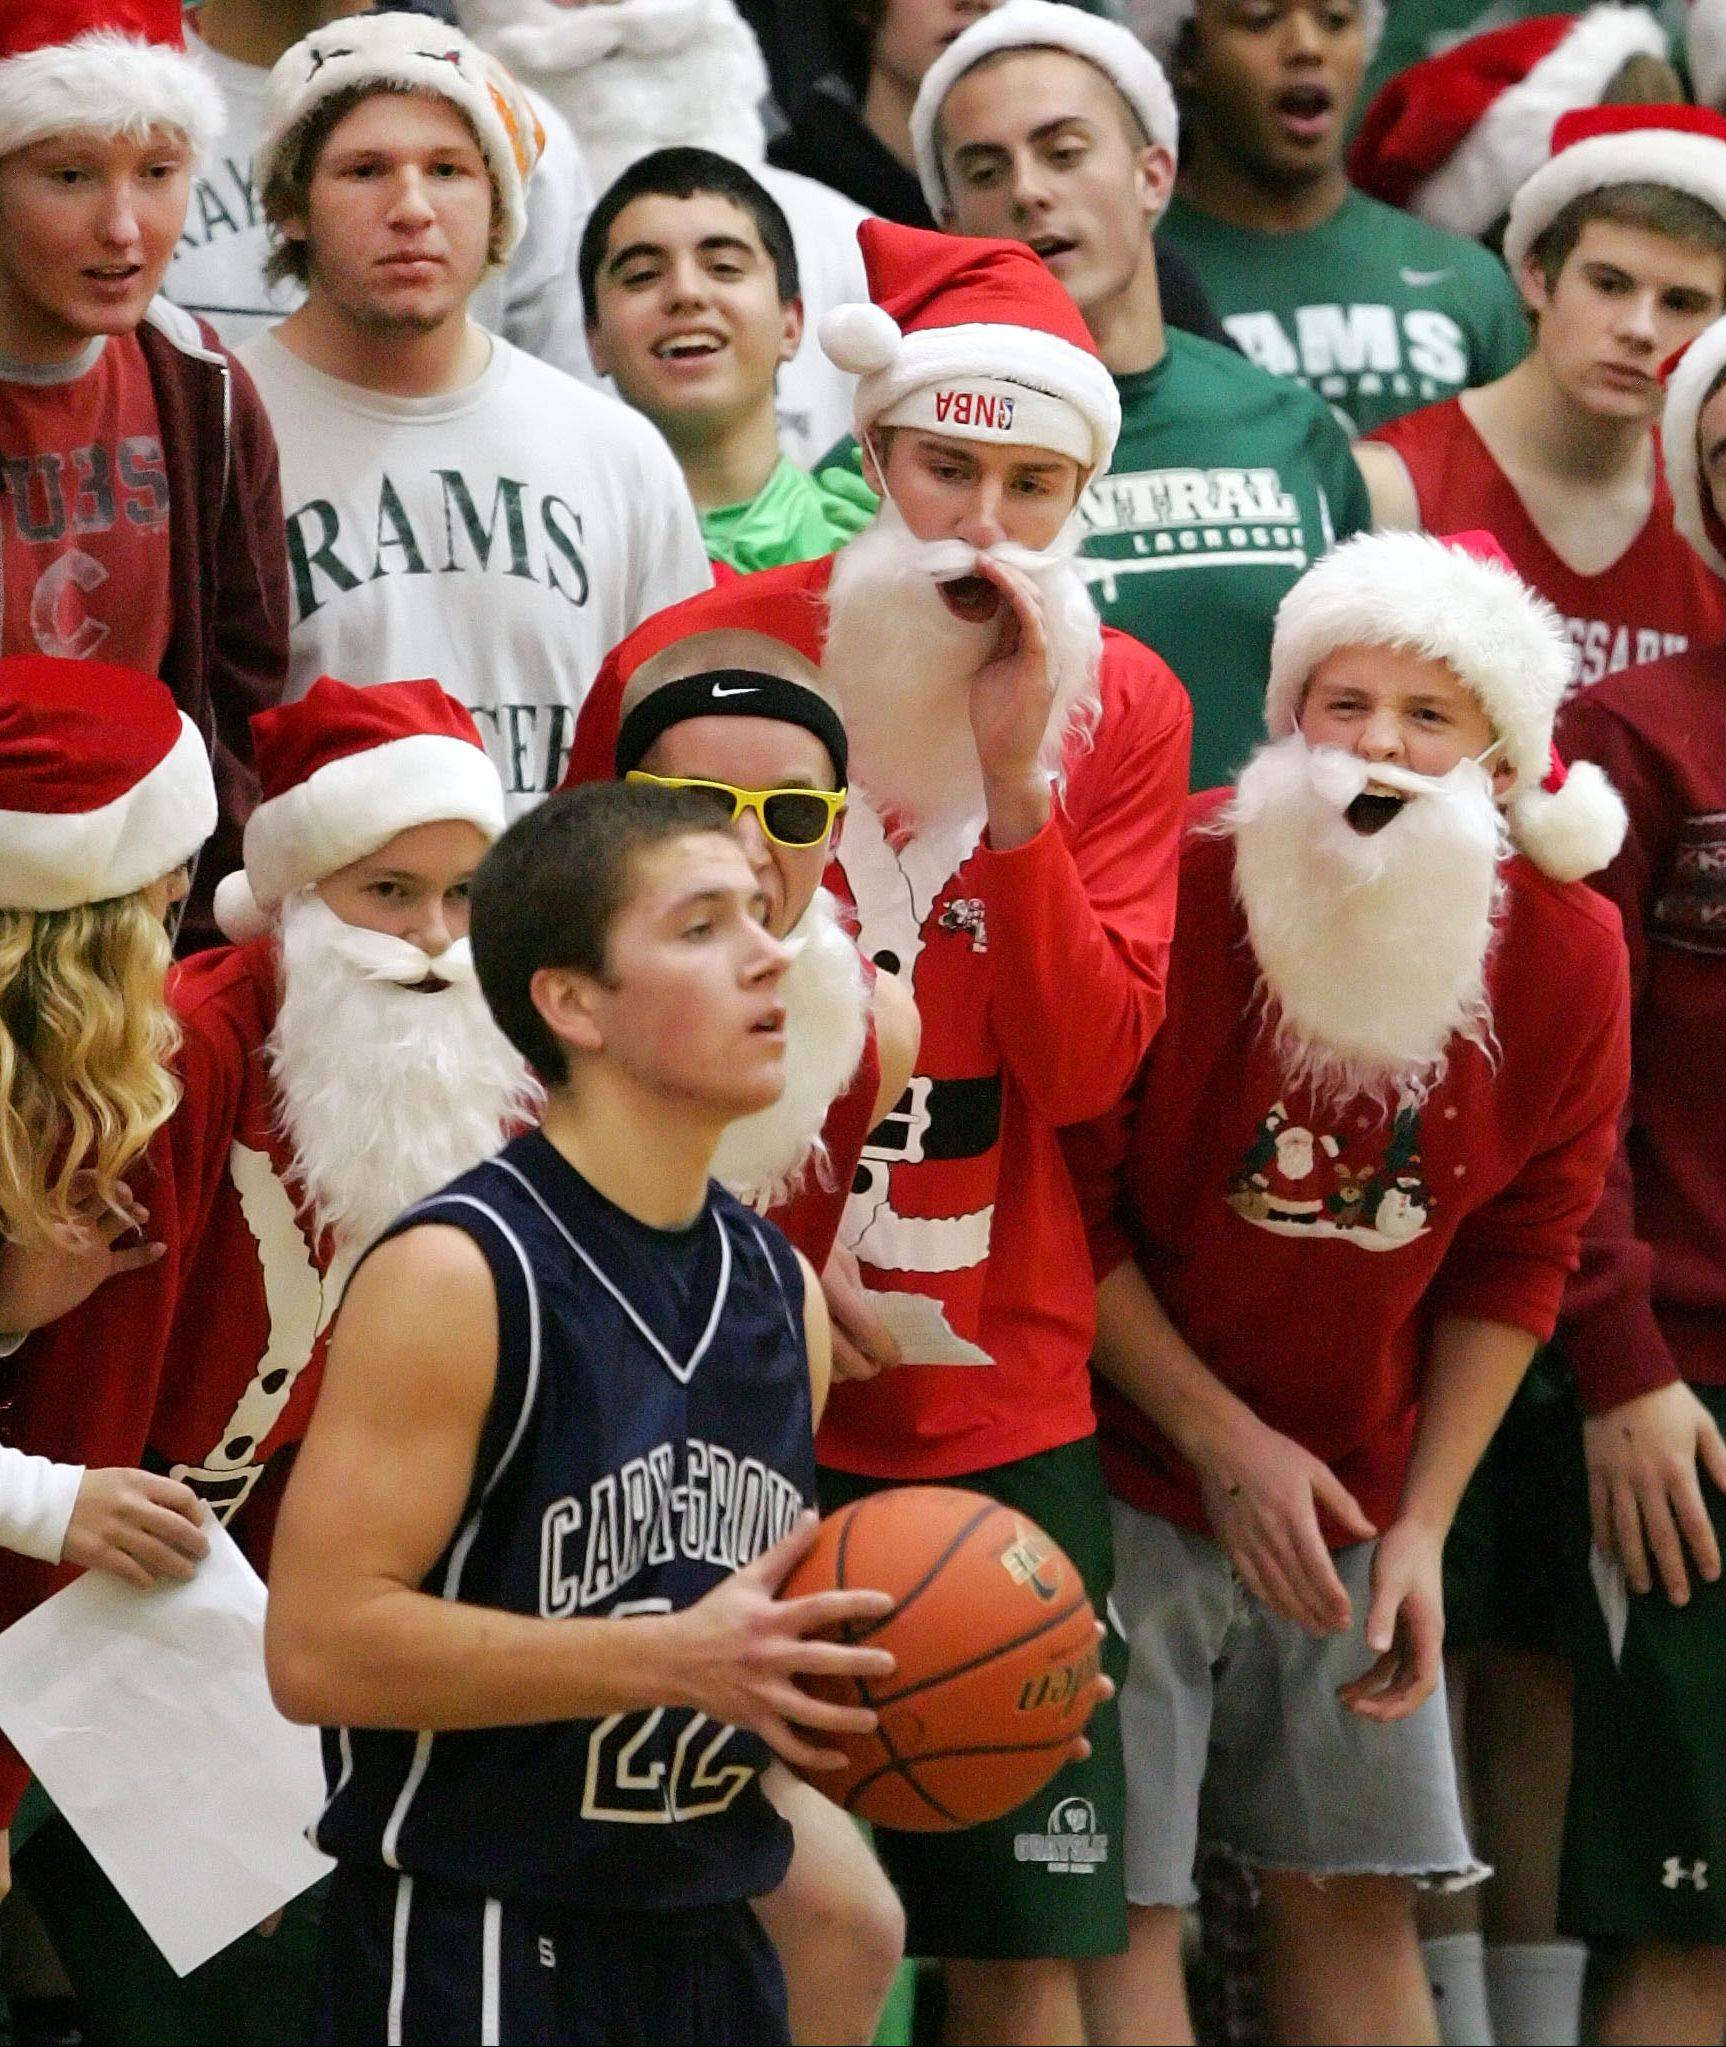 Grayslake Central fans dressed in Santa costumes jeer Cary-Grove's Matt Motzel as he inbounds the ball Tuesday night at Grayslake Central.